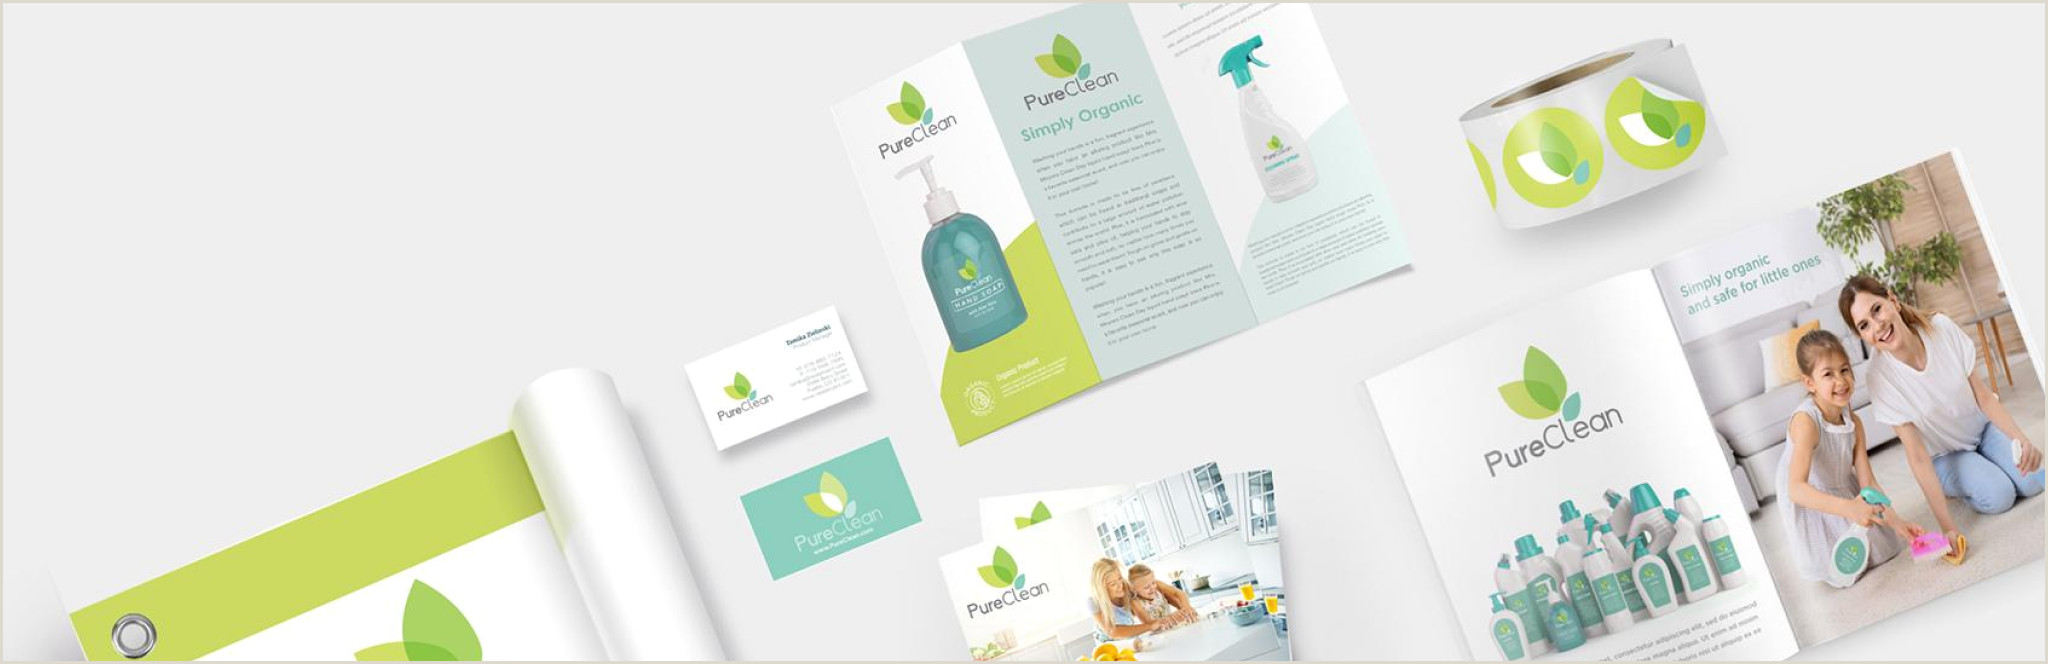 Where To Print Business Cards Same Day Printplace High Quality Line Printing Services